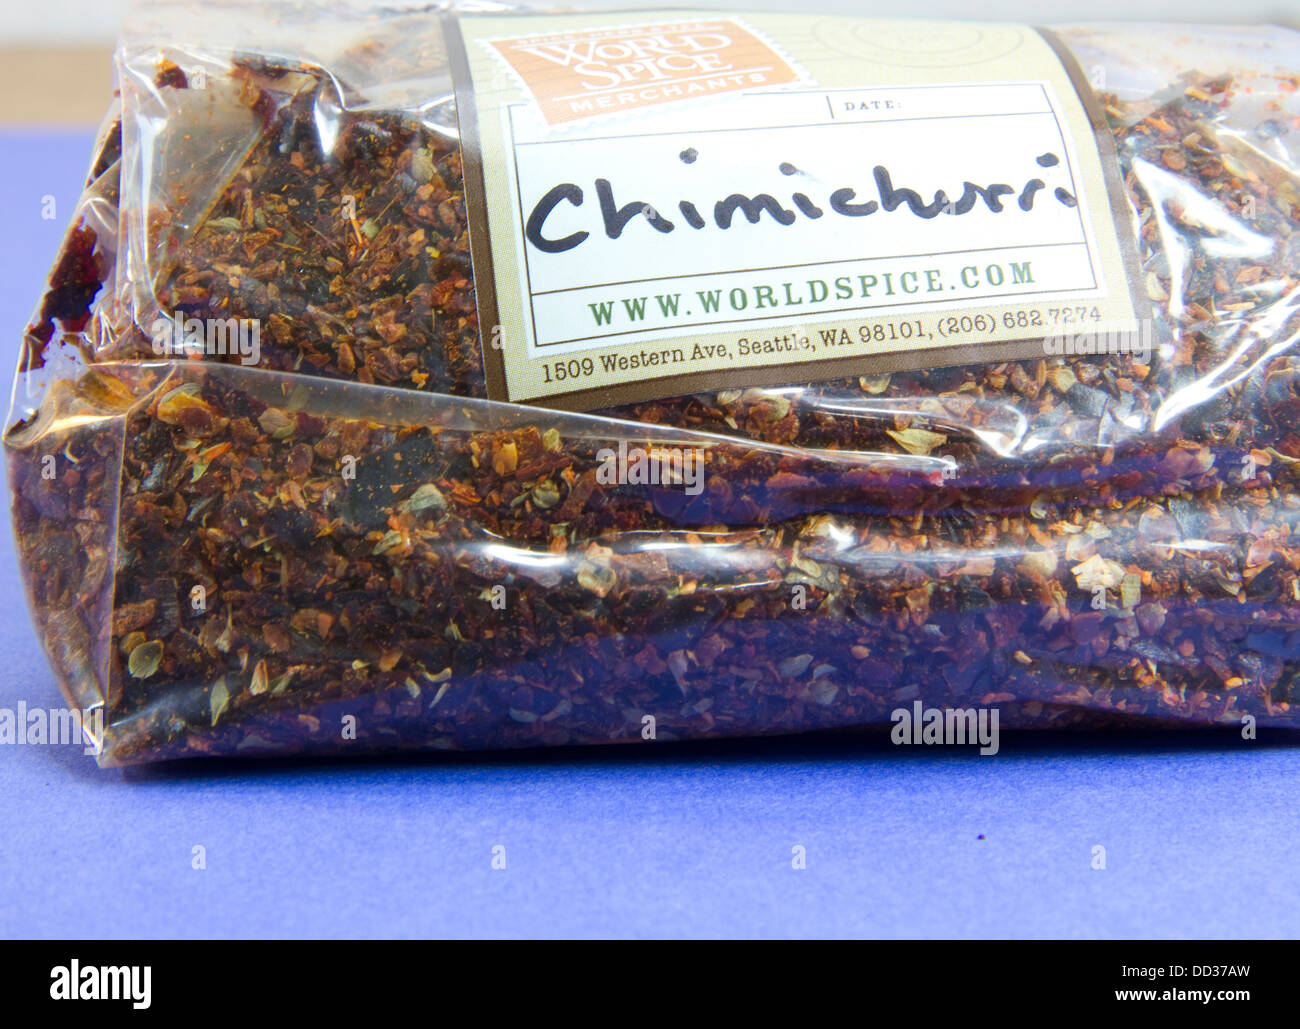 Chimichurri spice mix from a specialist spice expert in Oregon, USA. - Stock Image